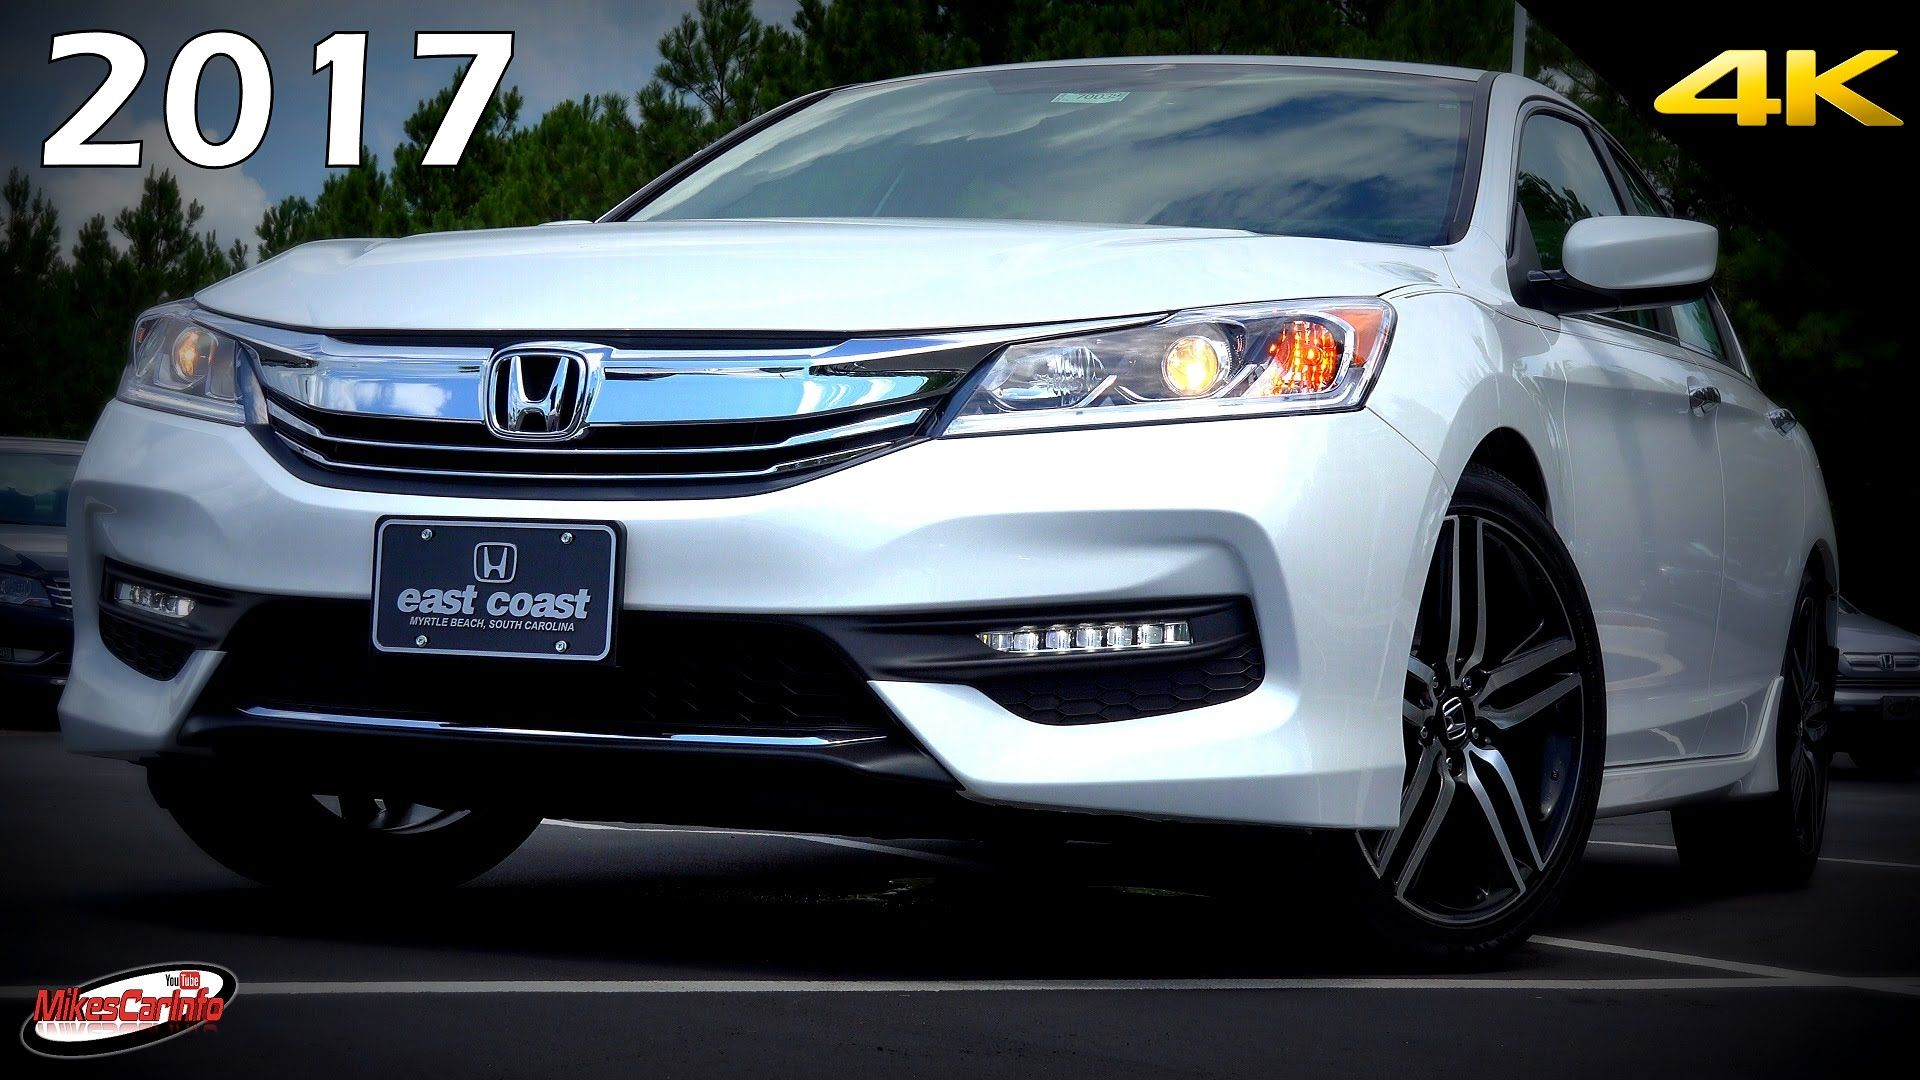 Awesome 2017 honda accord sport se cvt for sale view more at http shipperscentral com wp product 2017 honda accord sport se cvt for sale 3 pinterest